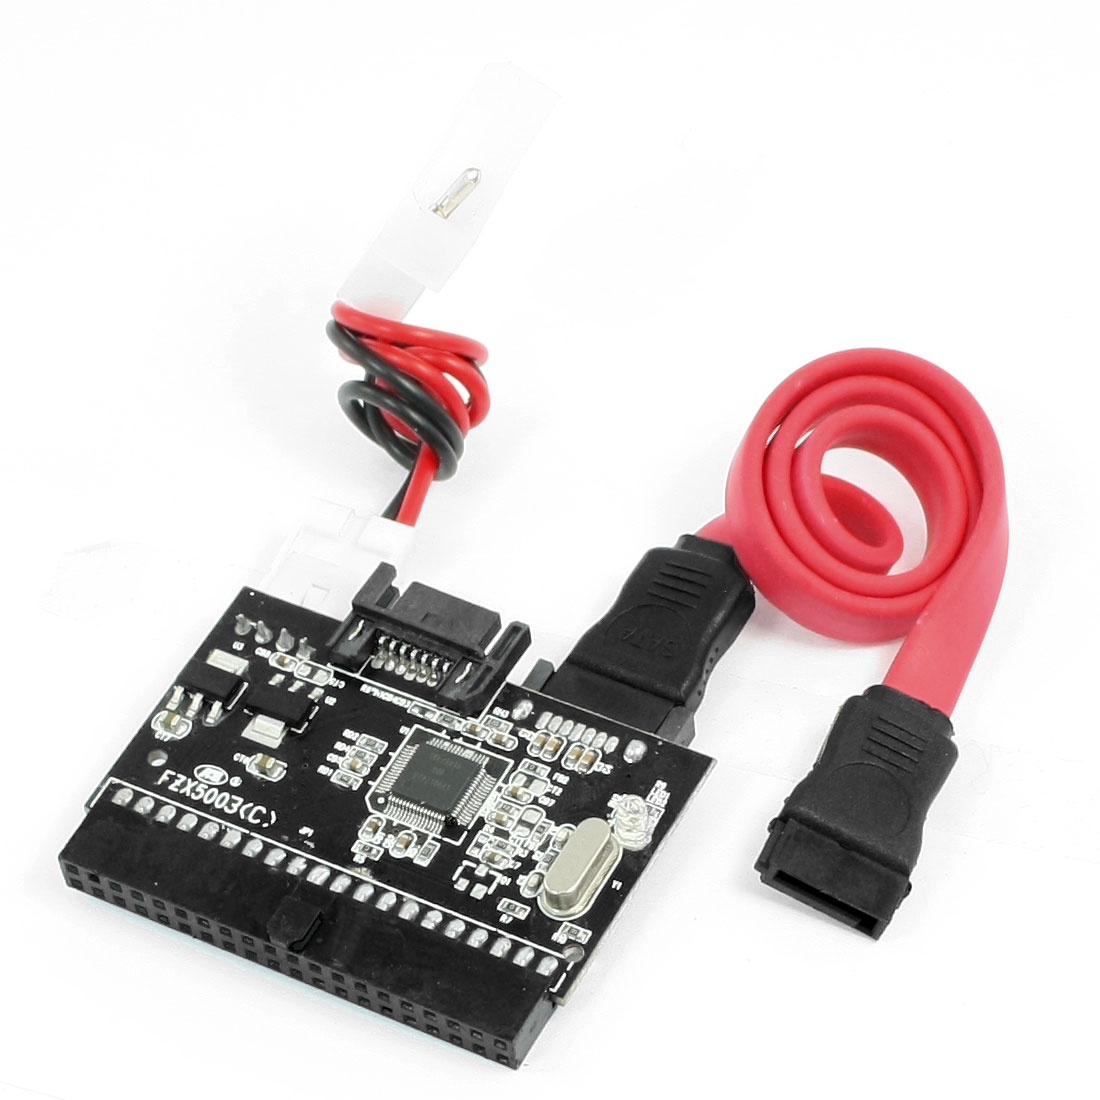 Bidirectional IDE to SATA Serial Bridge Converter Adapter Card w Cable